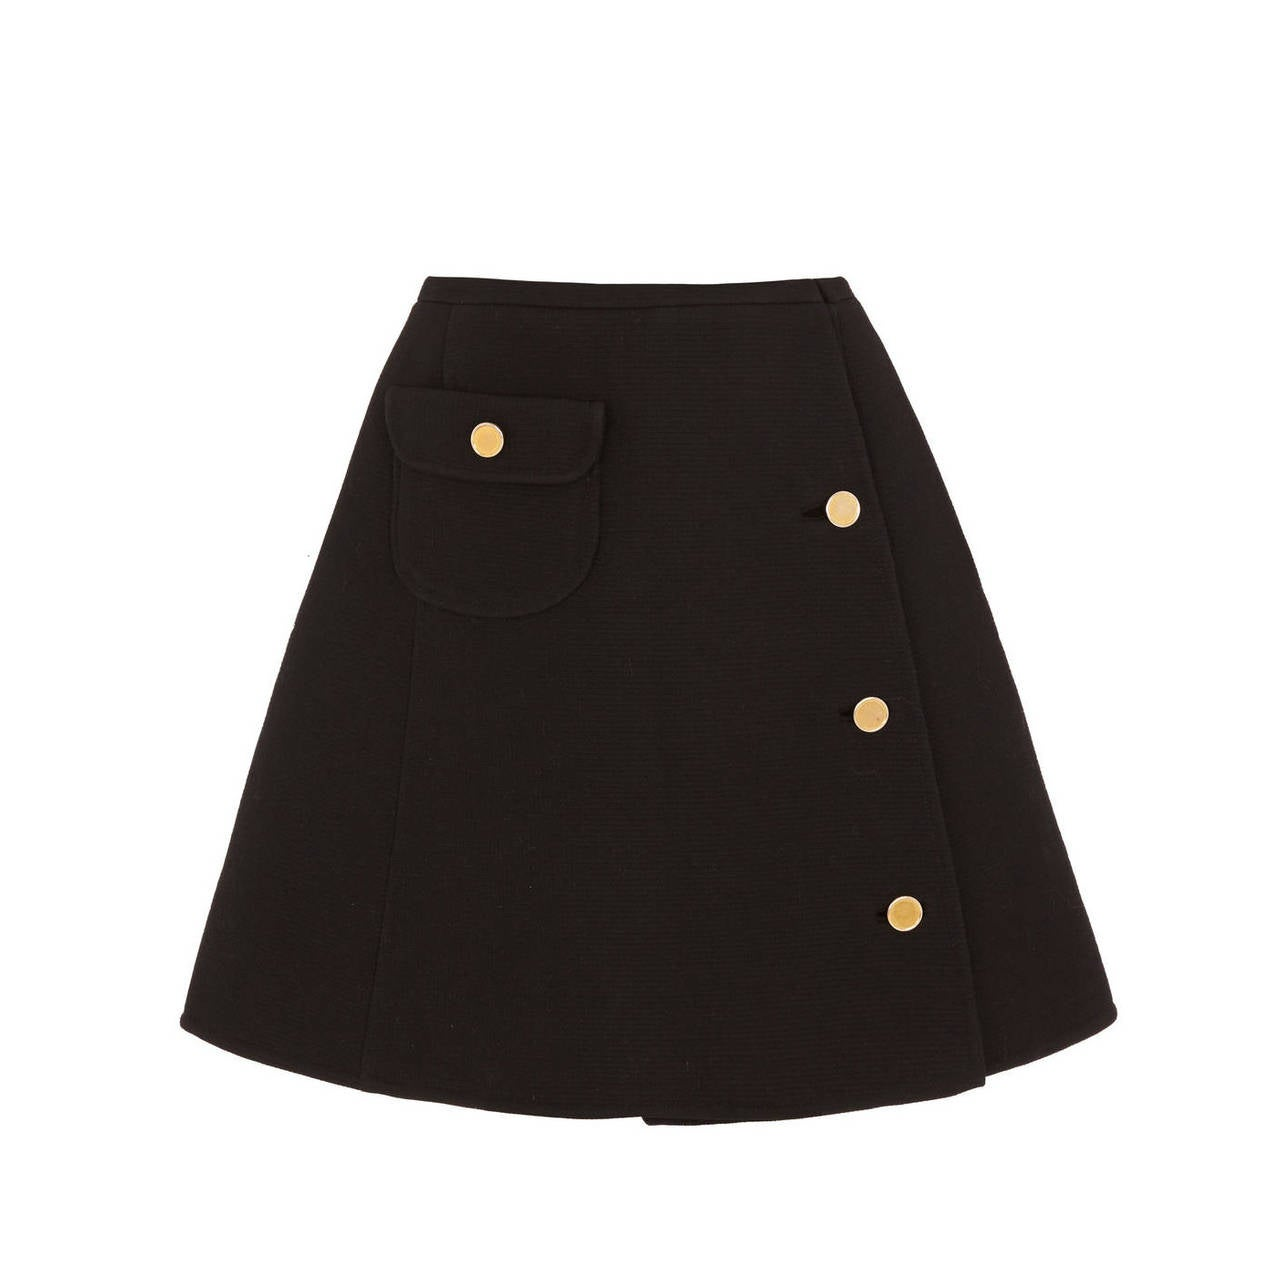 1960s Courreges Black Wool A-Line Skirt at 1stdibs